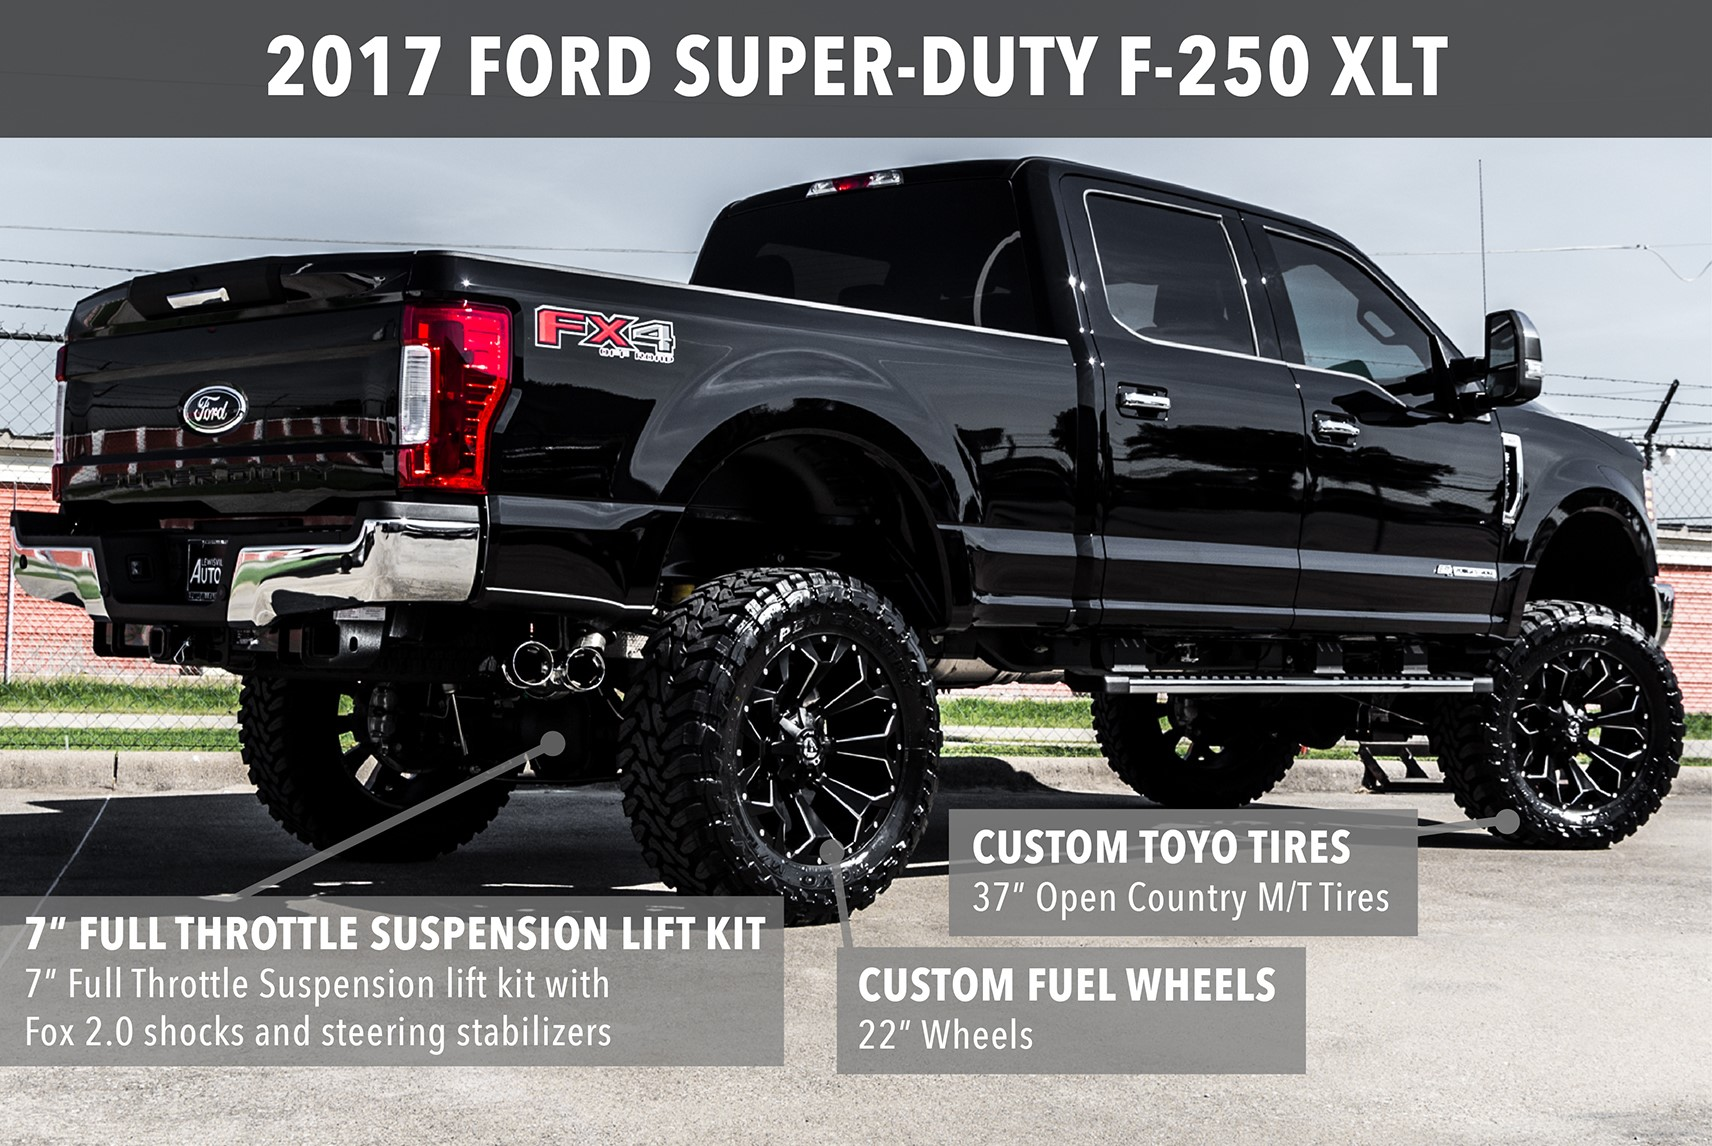 f duty year front interior finalist platinum en the of truck trend seats news super motor ford